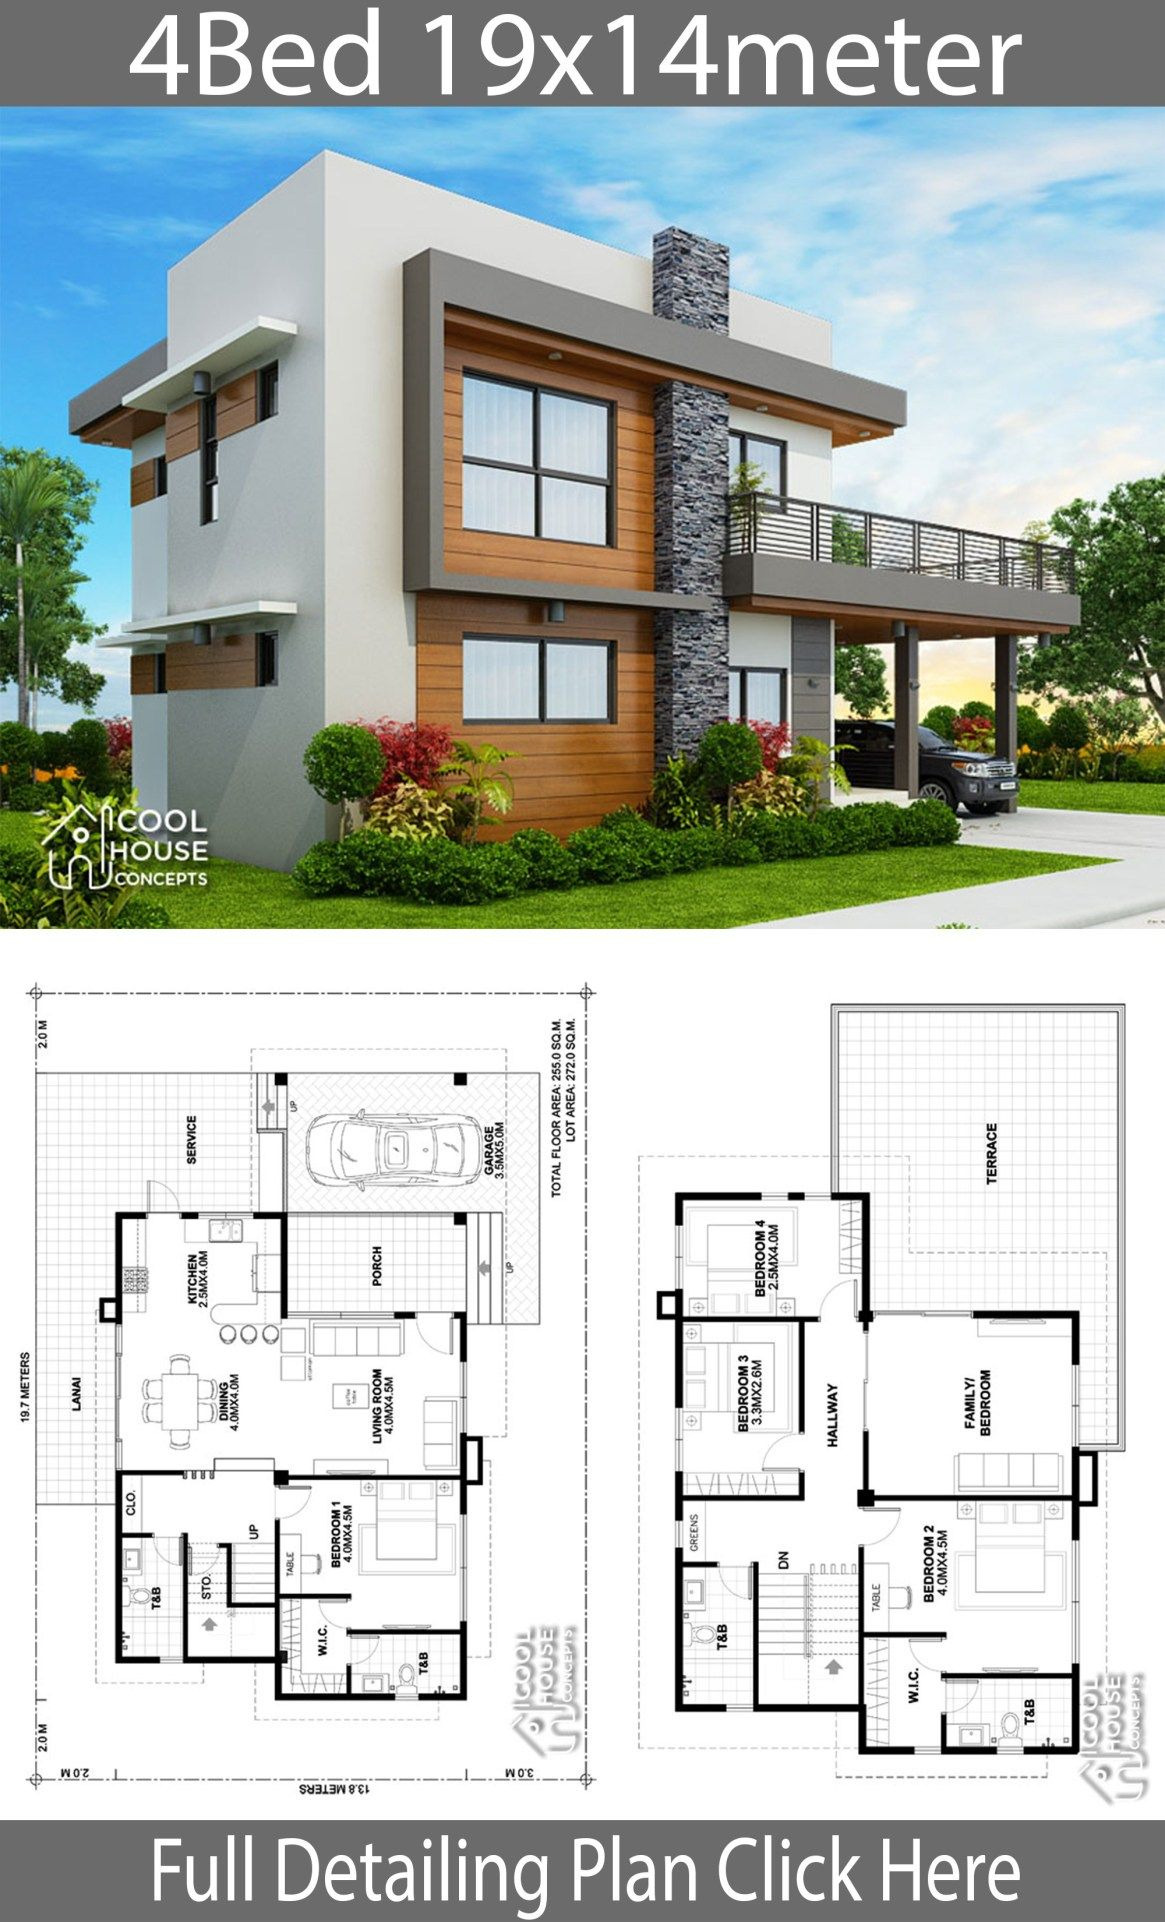 4 Bedroom House Designs Fresh Home Design Plan 19x14m with 4 Bedrooms